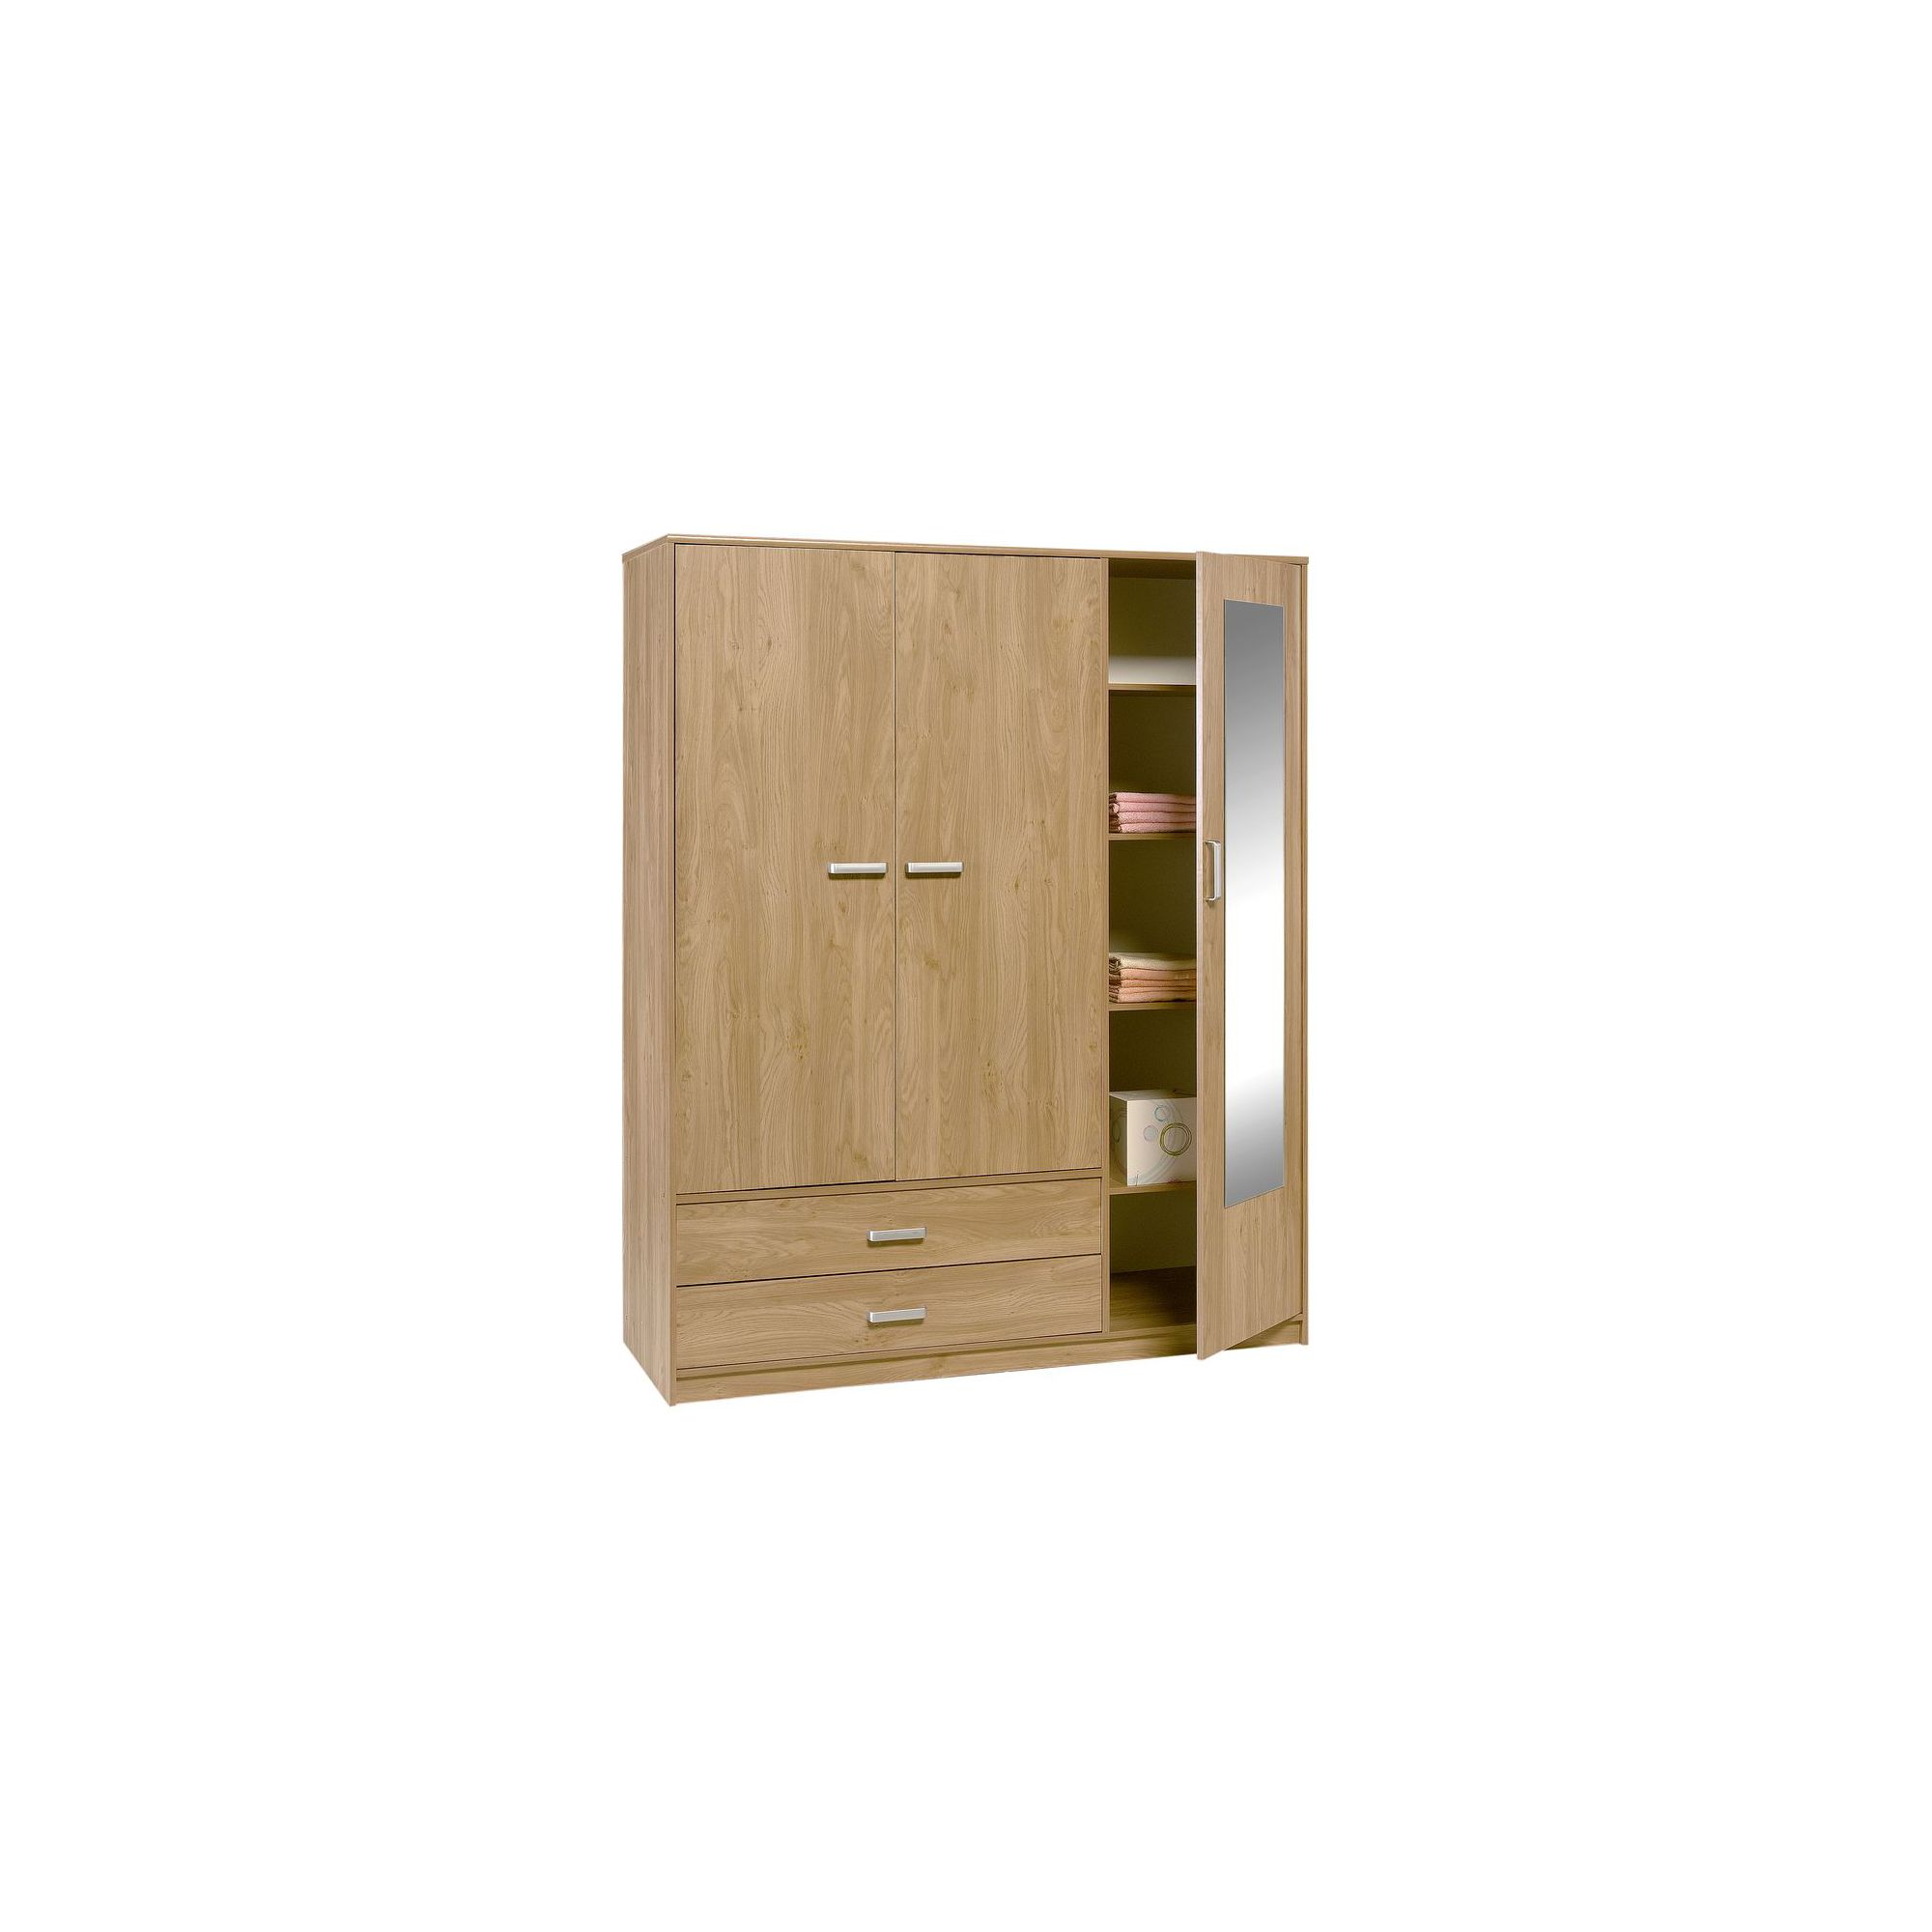 Altruna Frucha Three Door Two Drawer Wardrobe in Oak at Tesco Direct